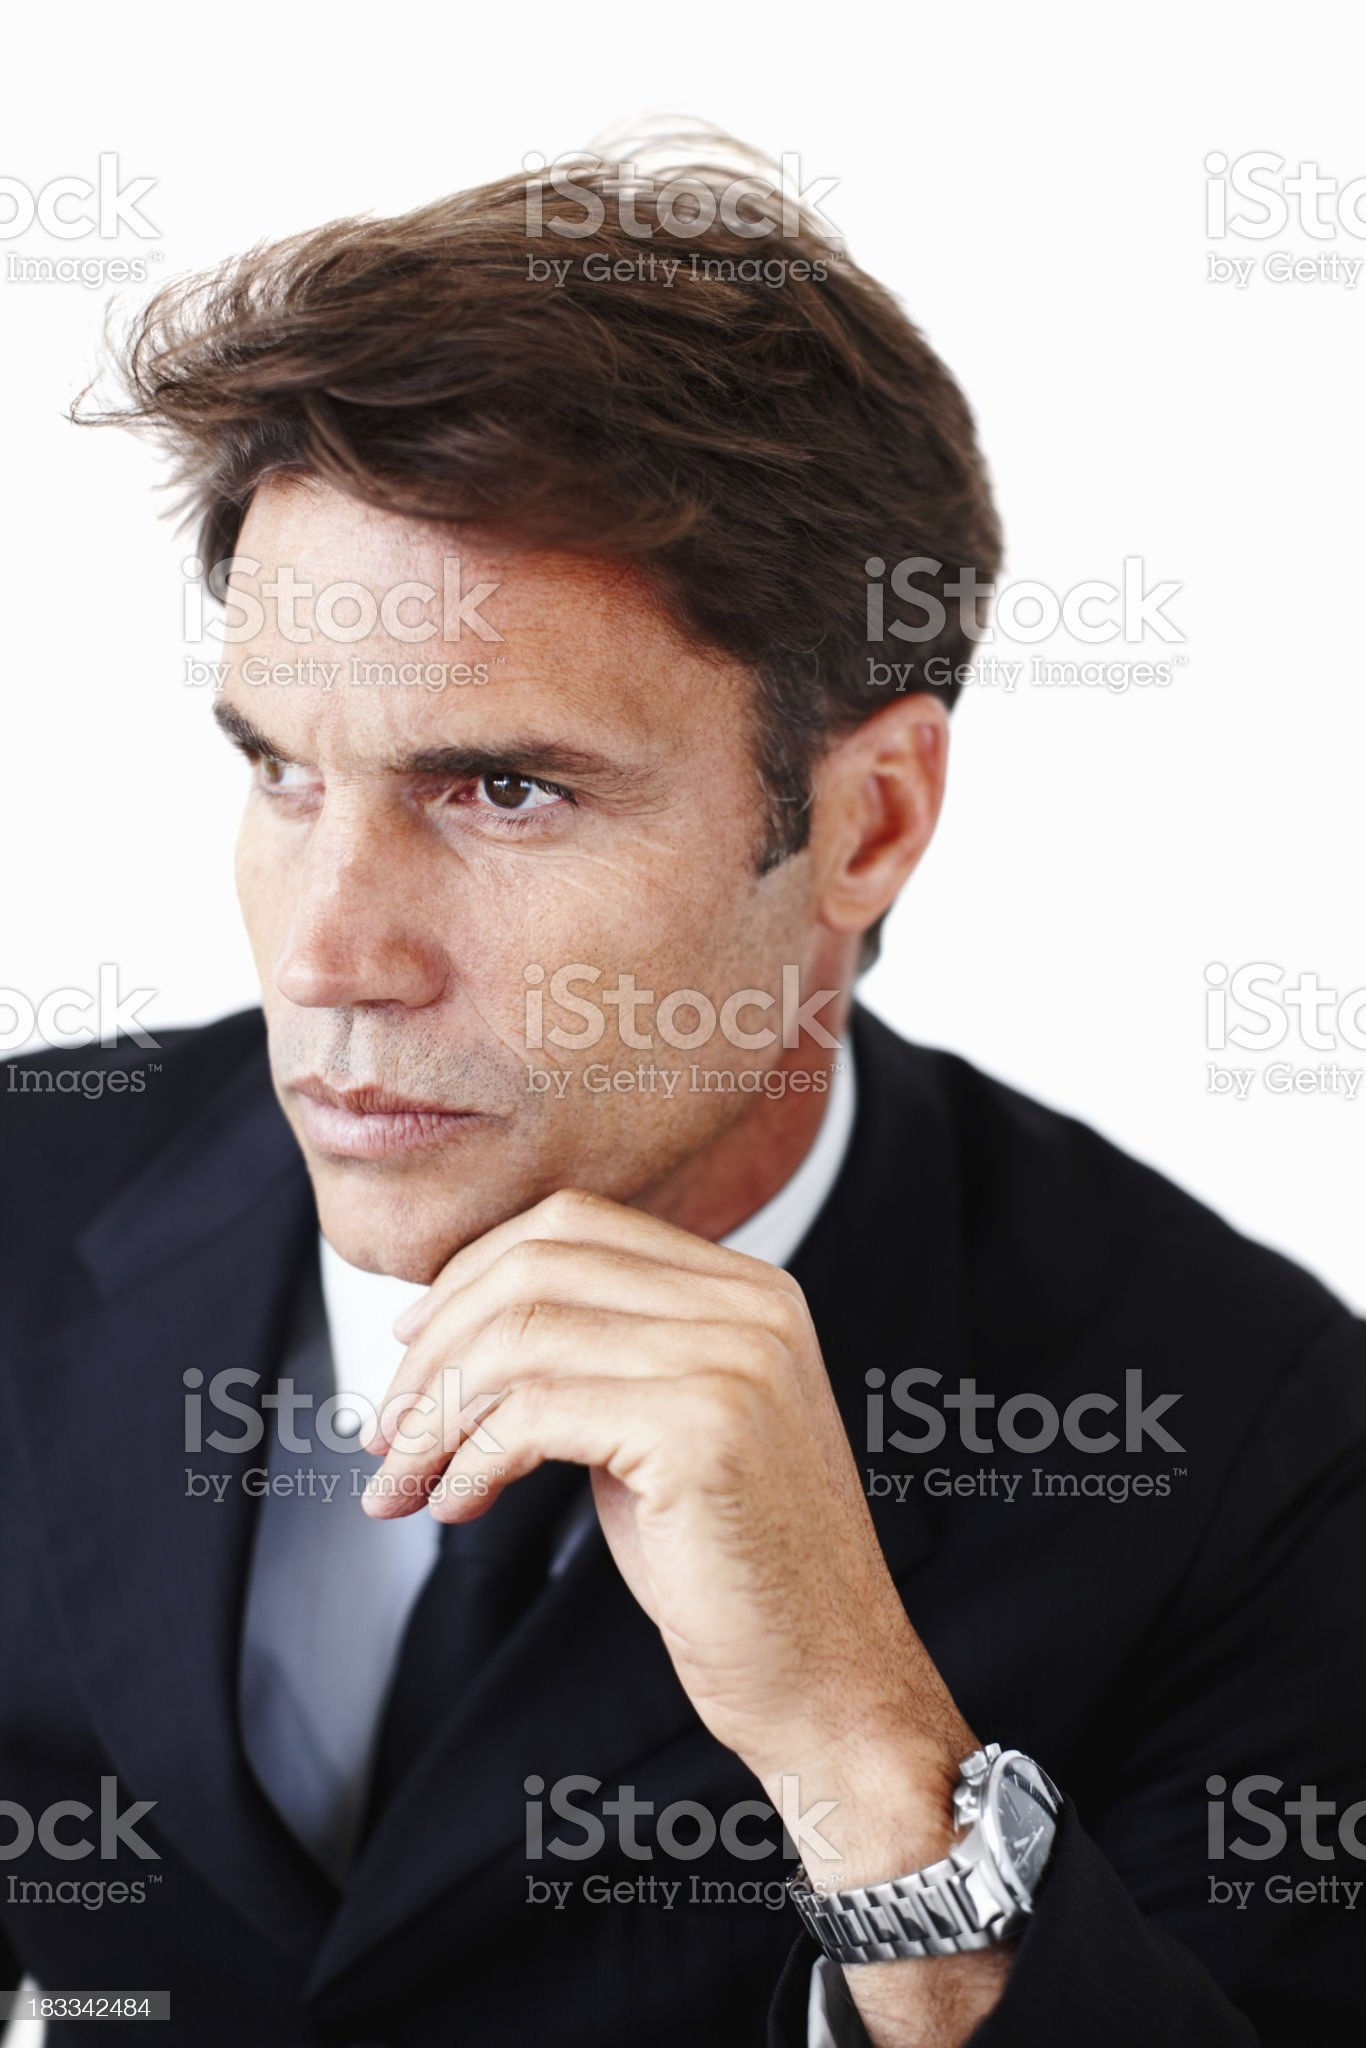 Handsome executive thinking about options royalty-free stock photo